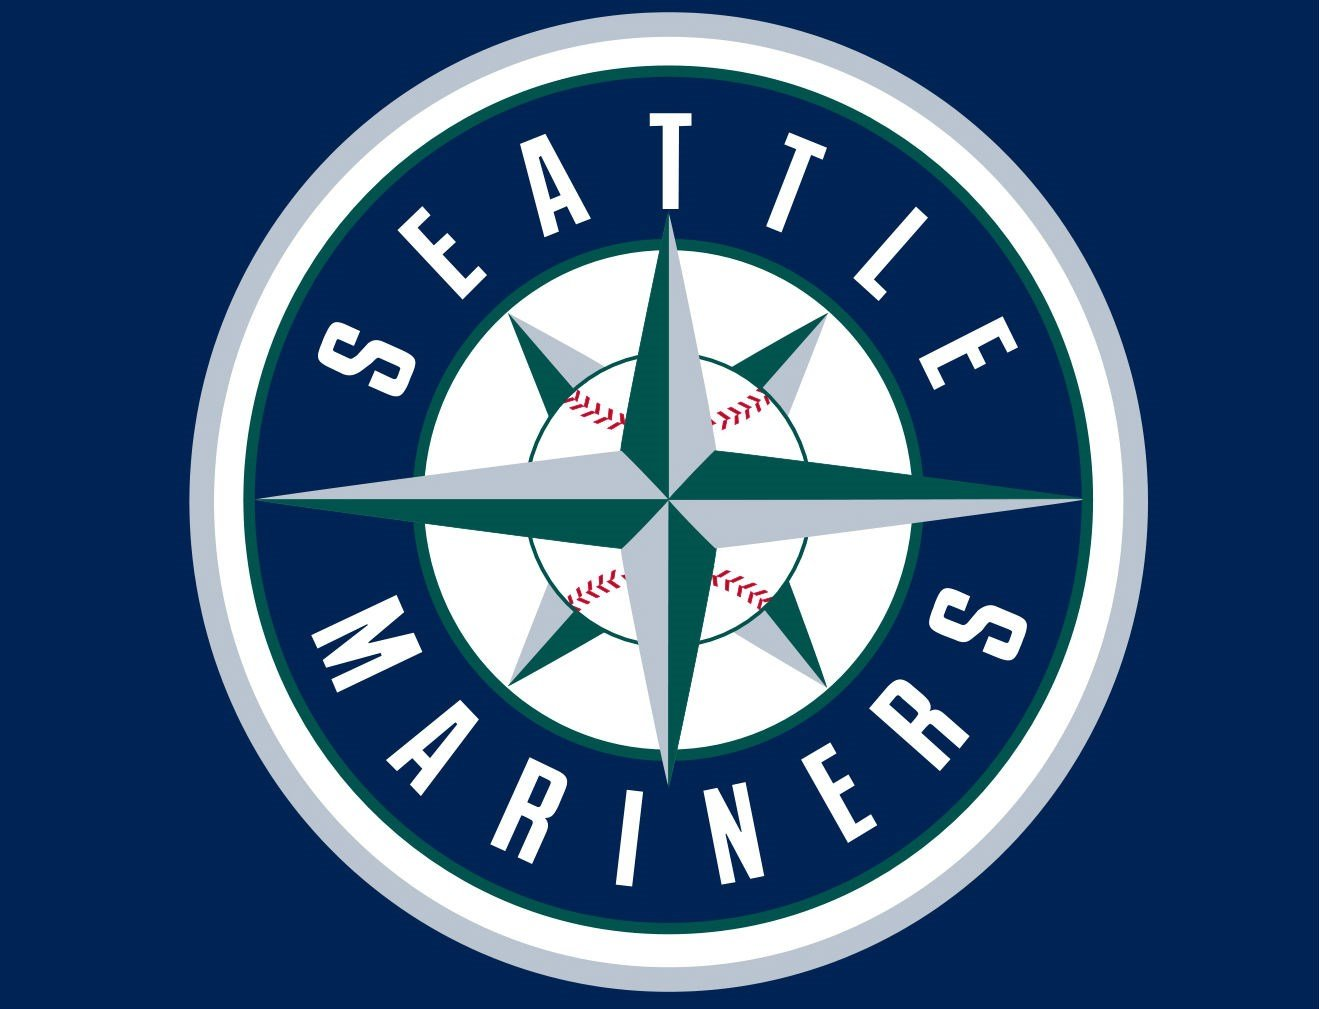 Mariners move to 39-40 on the season after their loss